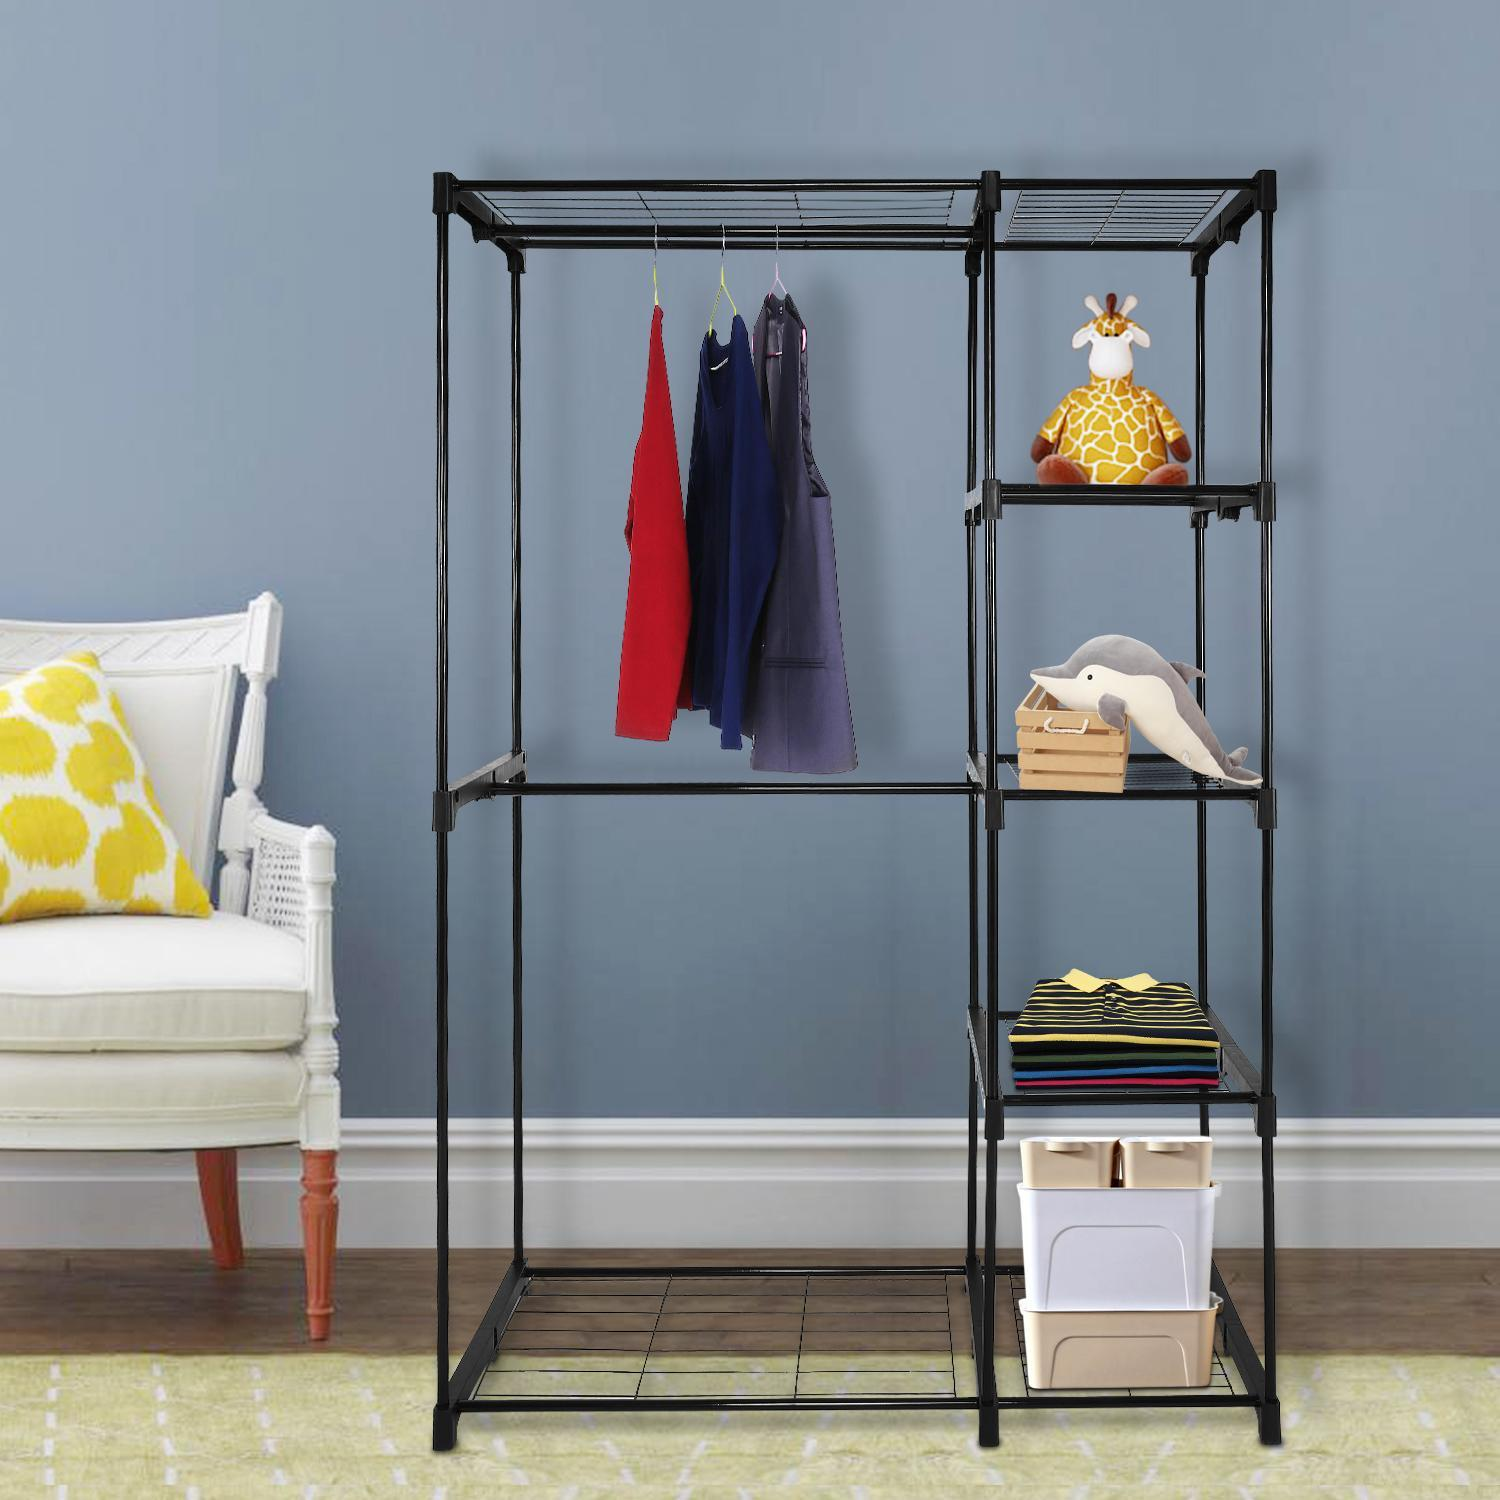 Closet Organizer Storage Rack Portable Clothes Hanger Home Garment Shelf